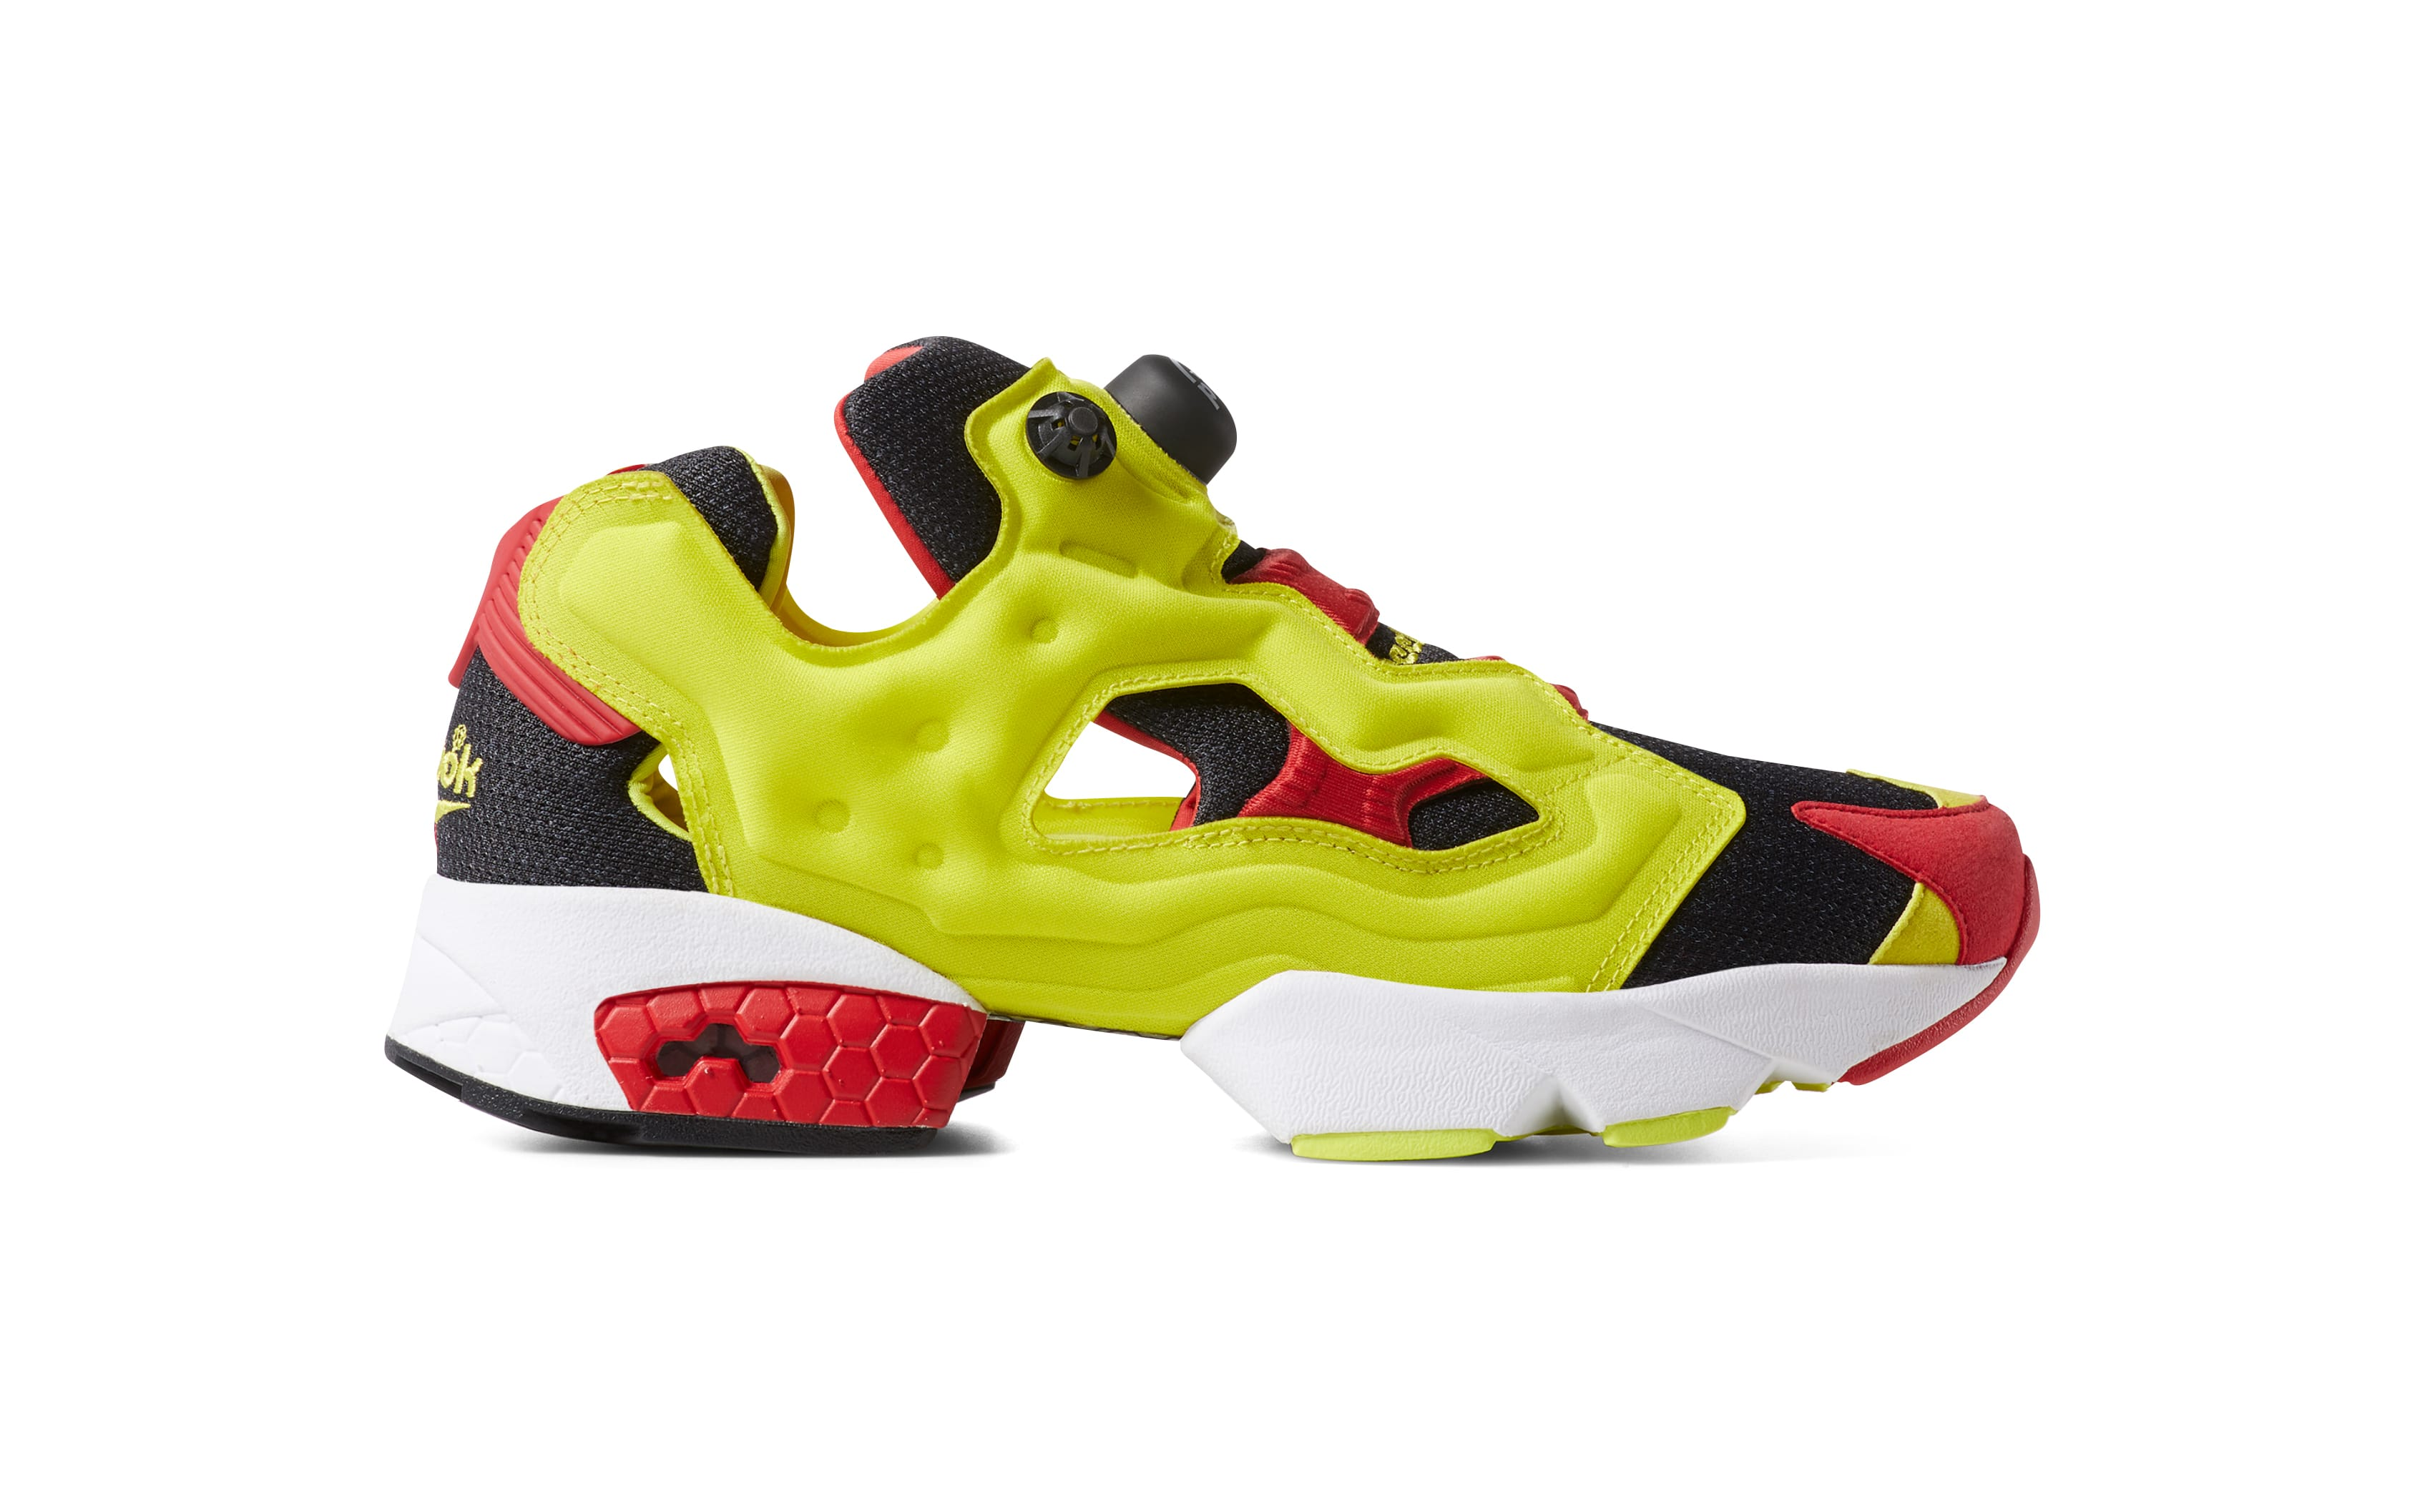 How The Reebok Pump Became An Icon In The Sneaker World